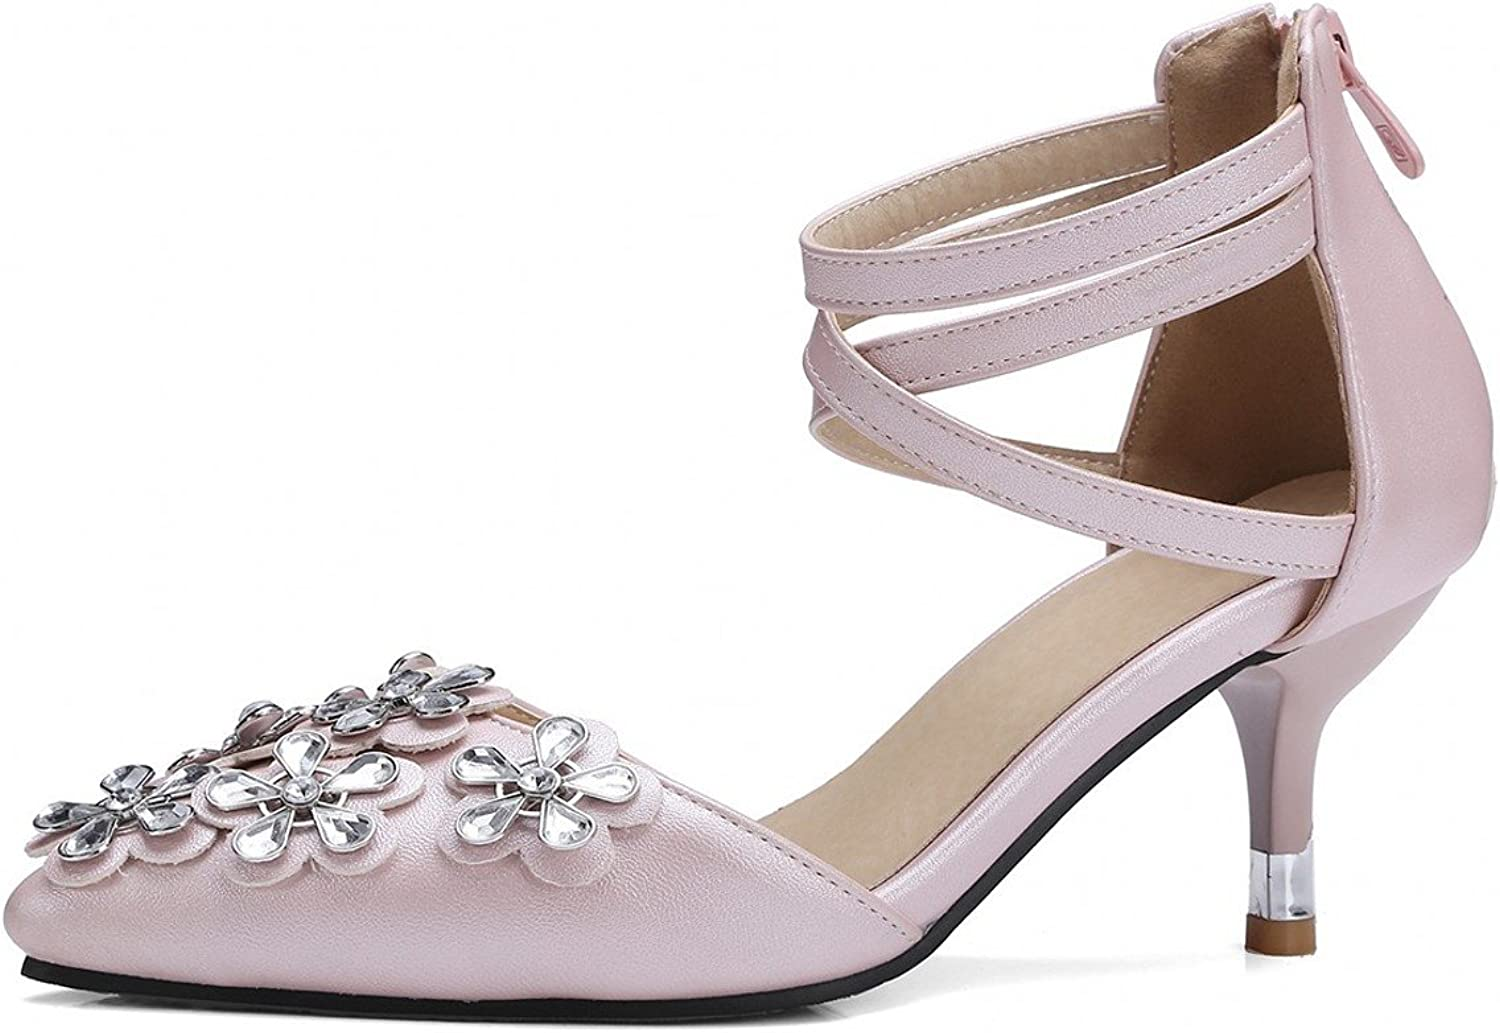 Rongzhi Womens Flower Pointed Toe Ankle Strap Buckle High Heels Party Dress Pumps Stiletto Heeled shoes